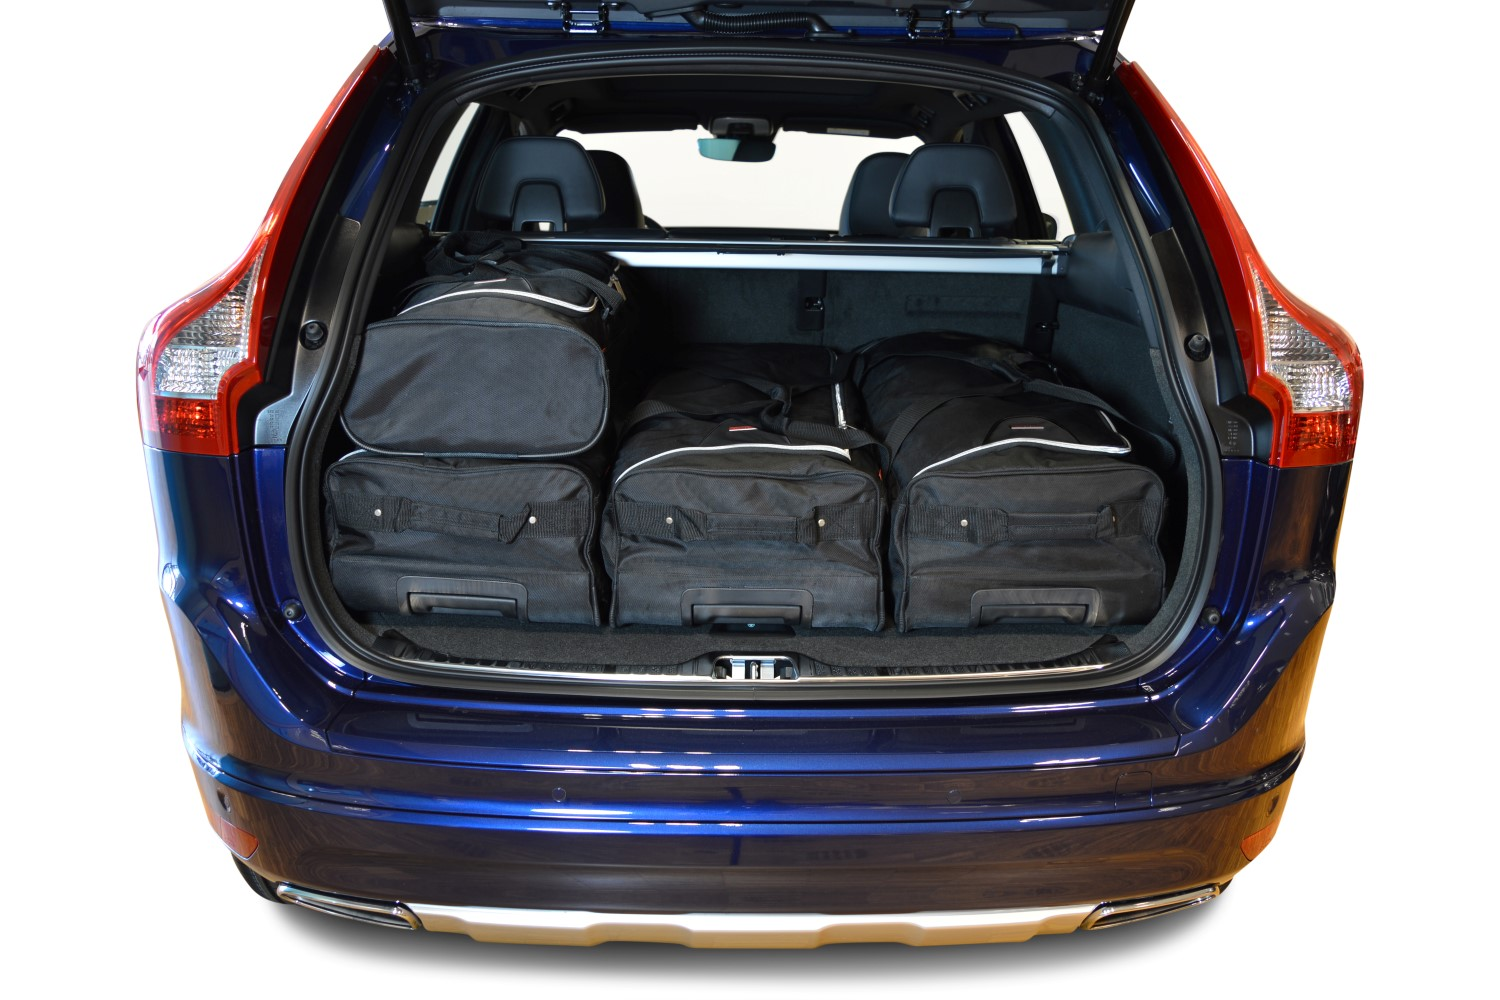 Volvo XC60 car travel bags | Car-Bags.com